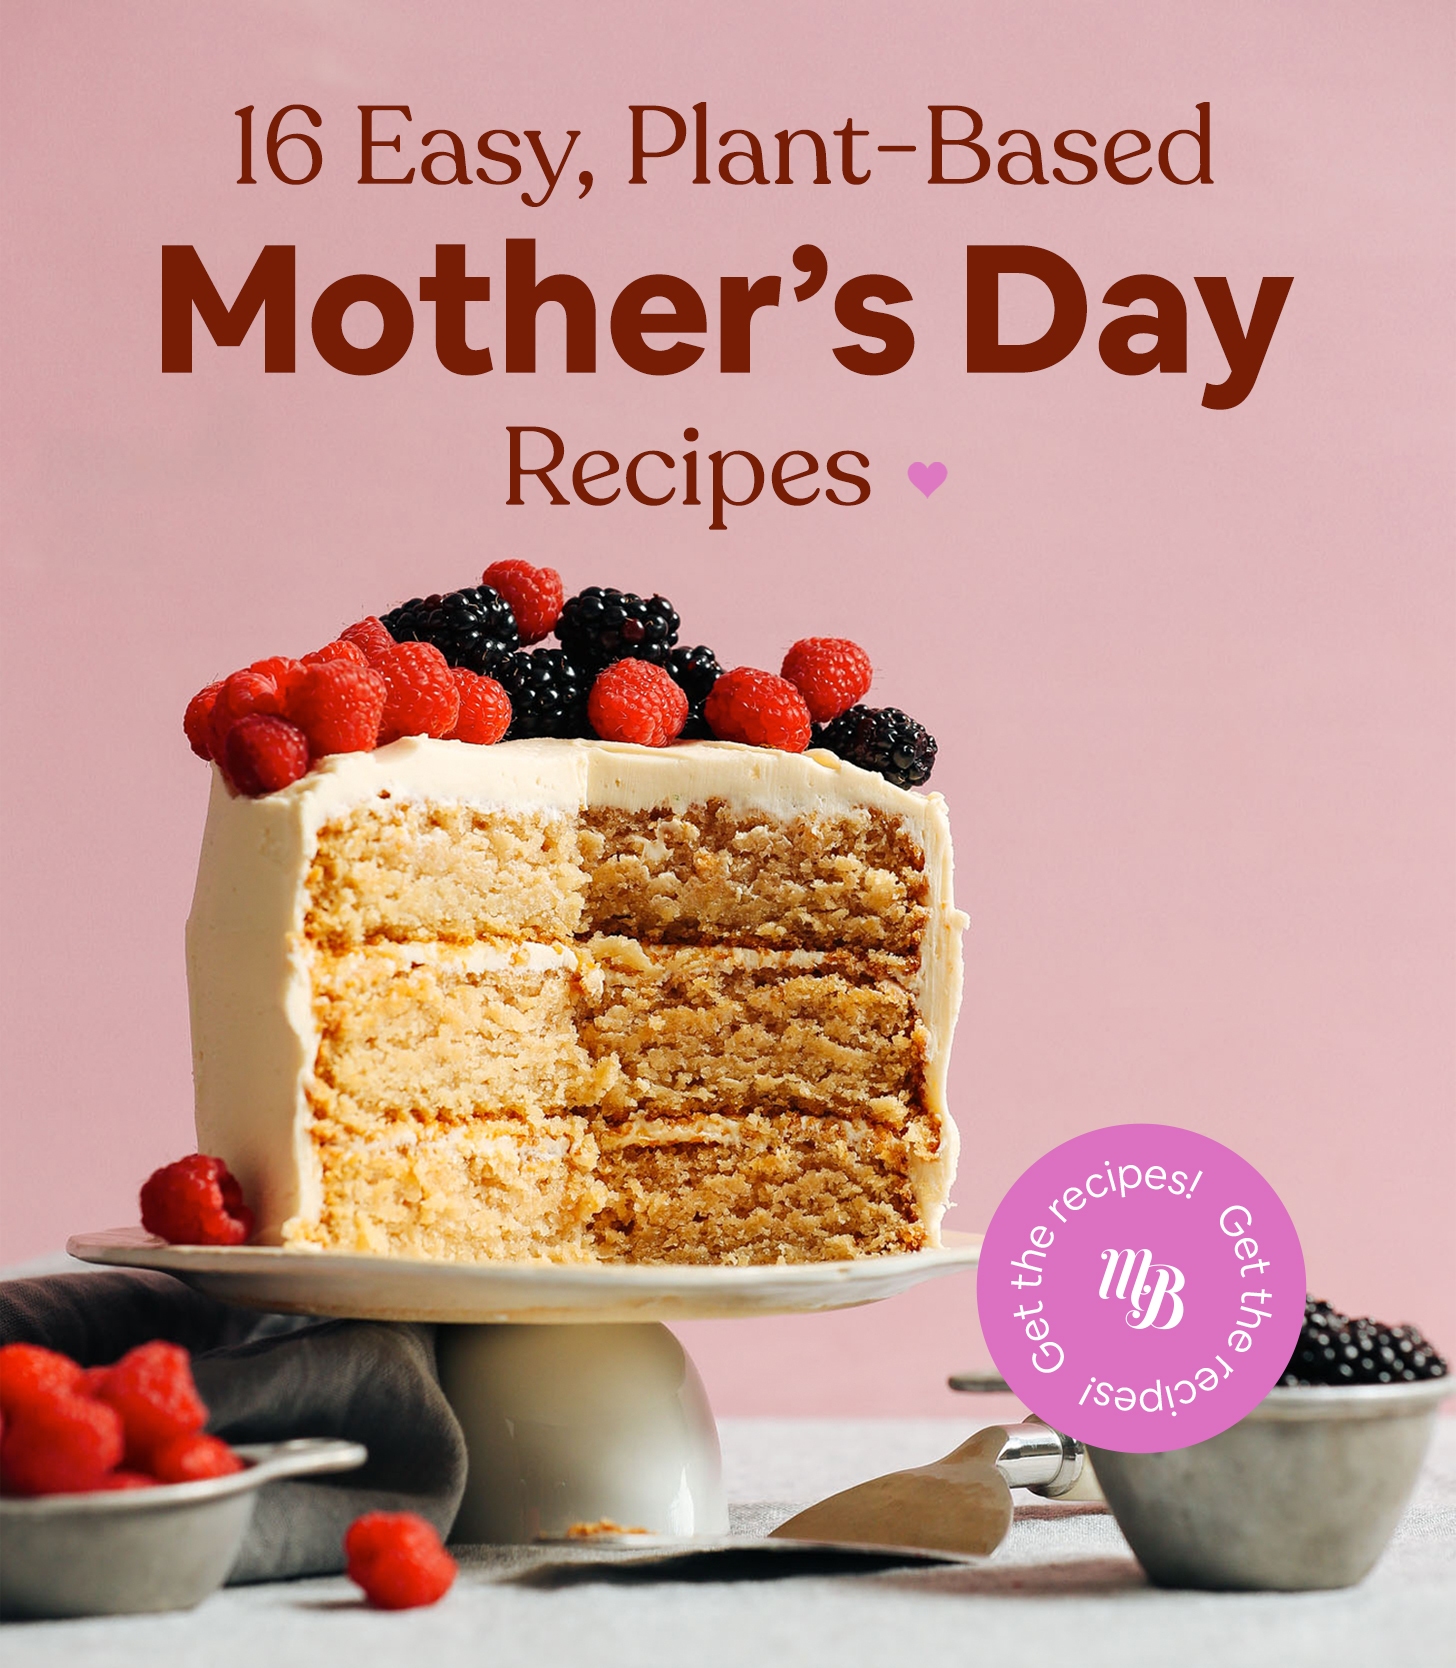 Tray of Vanilla Cake with text overlaid saying 16 Easy, Plant-Based Mother's Day Recipes